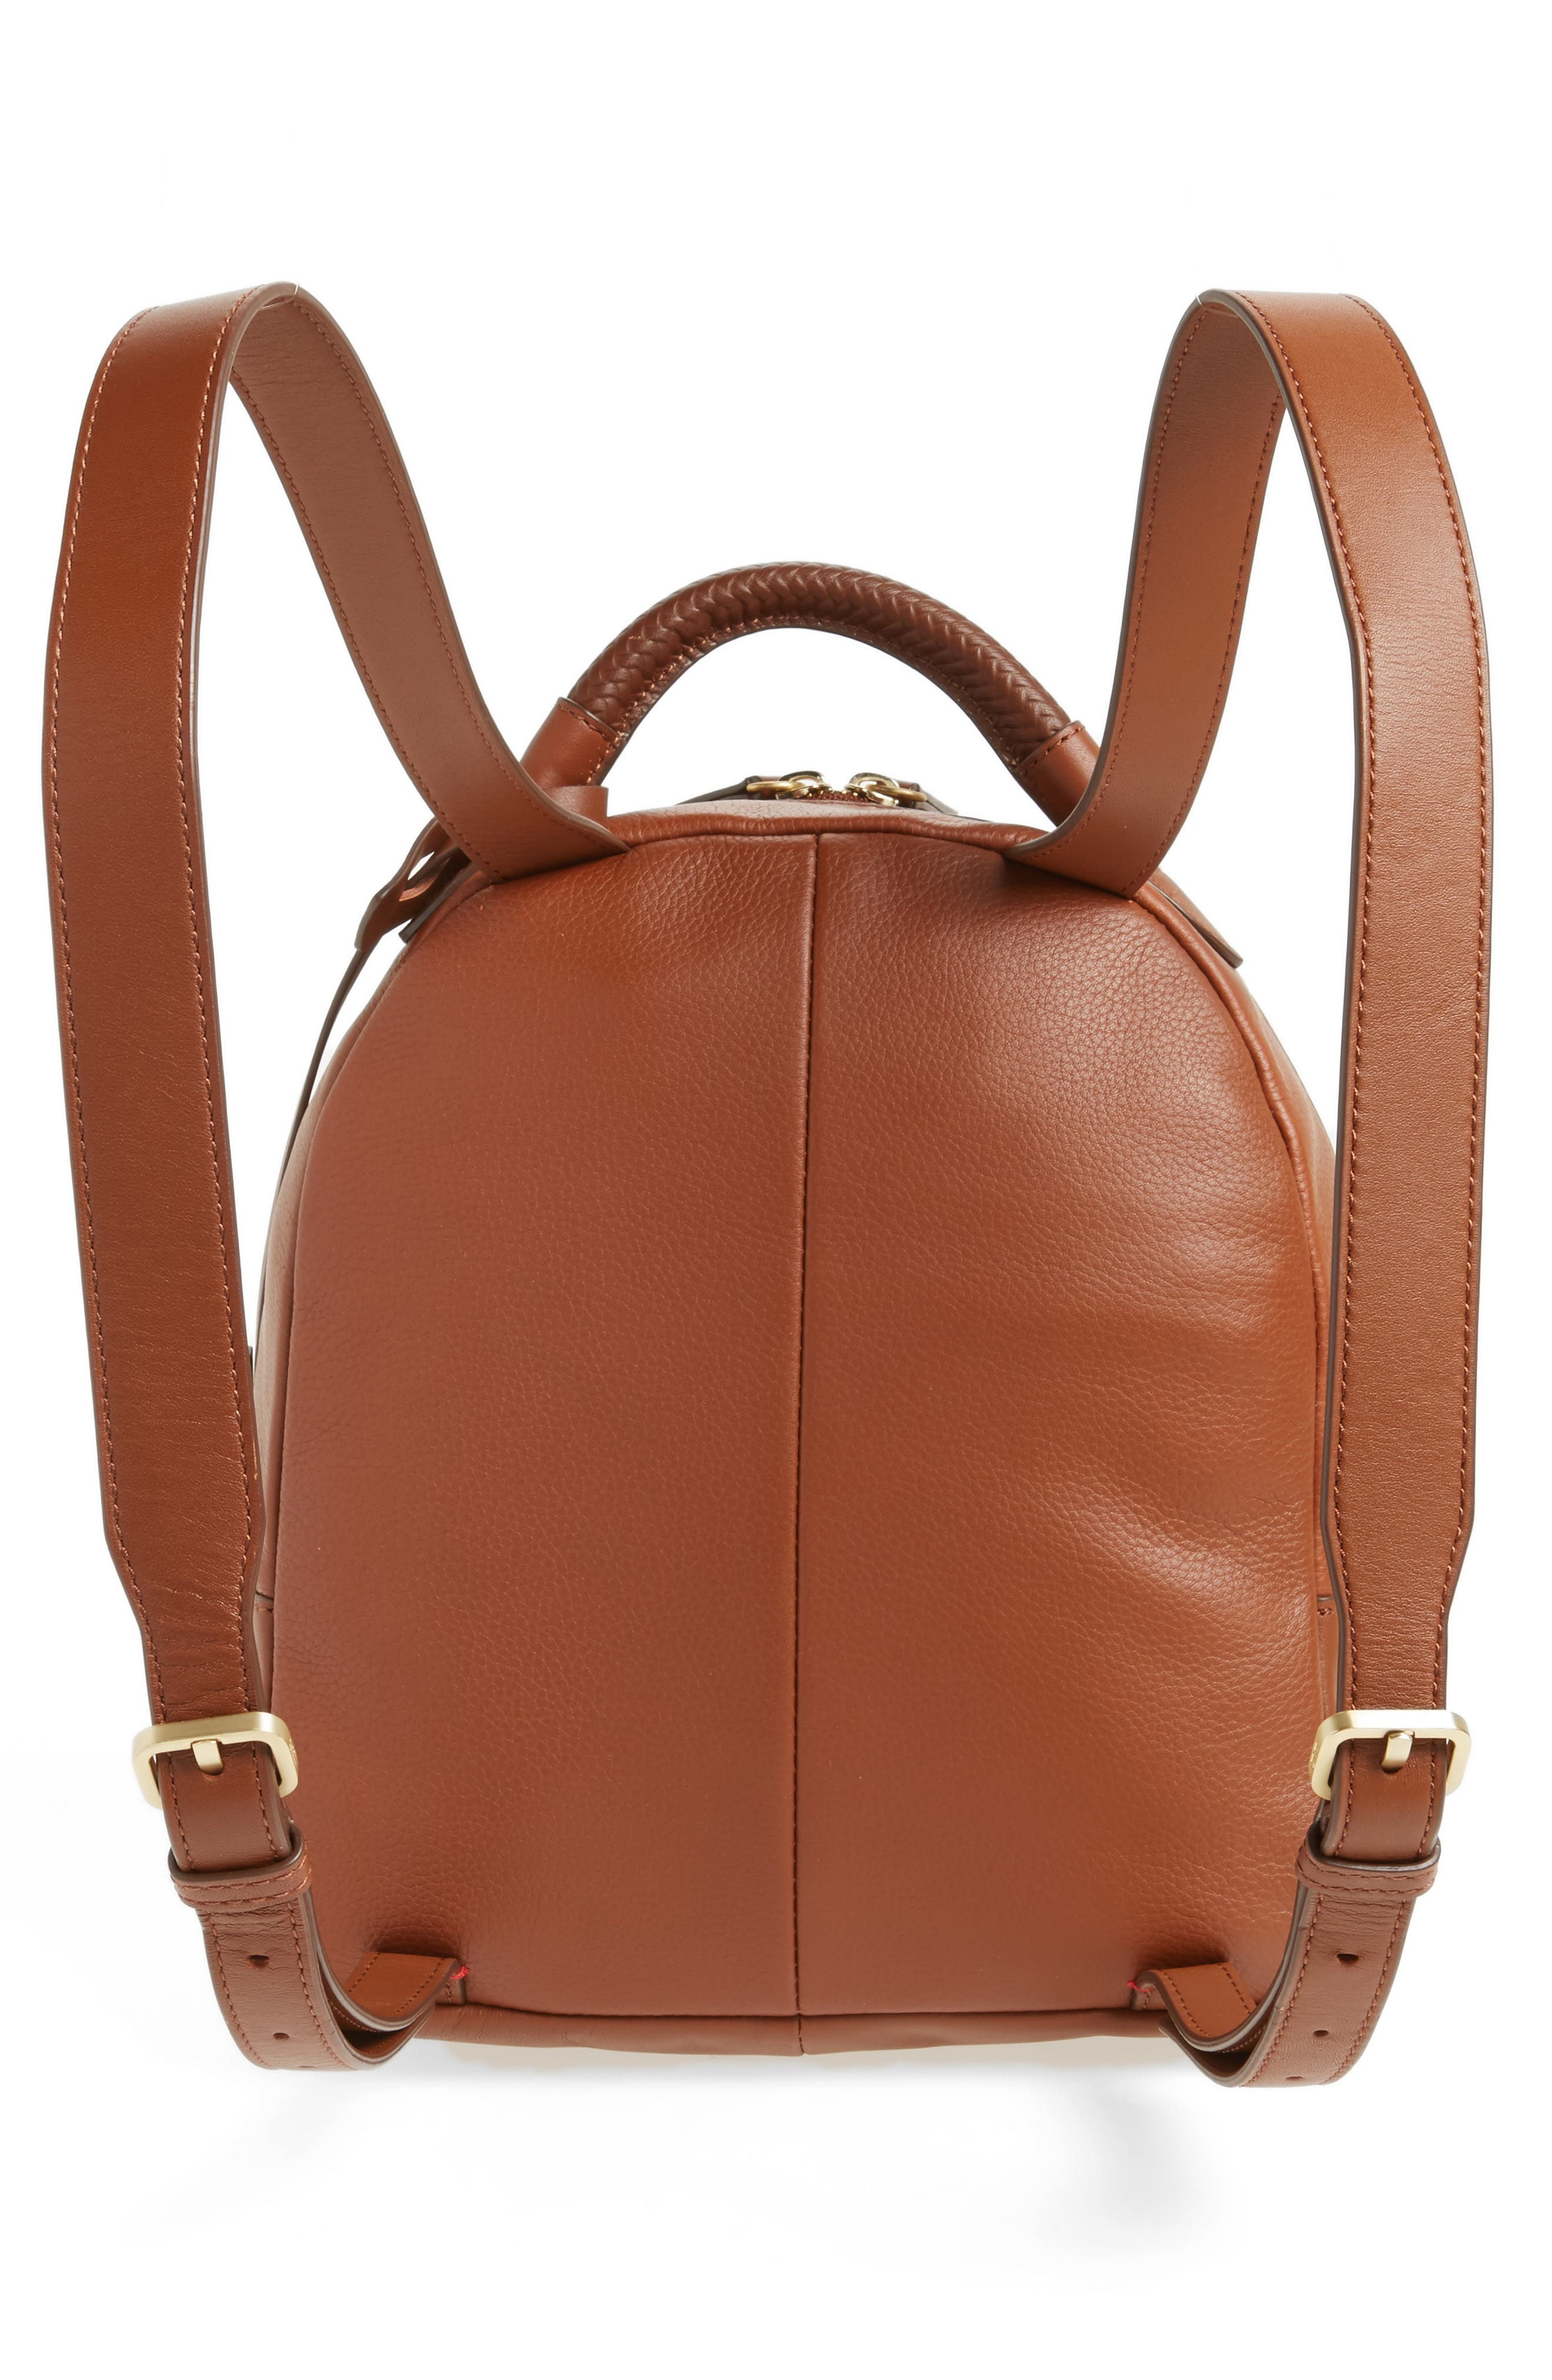 Brody Leather Backpack,                             Alternate thumbnail 3, color,                             242